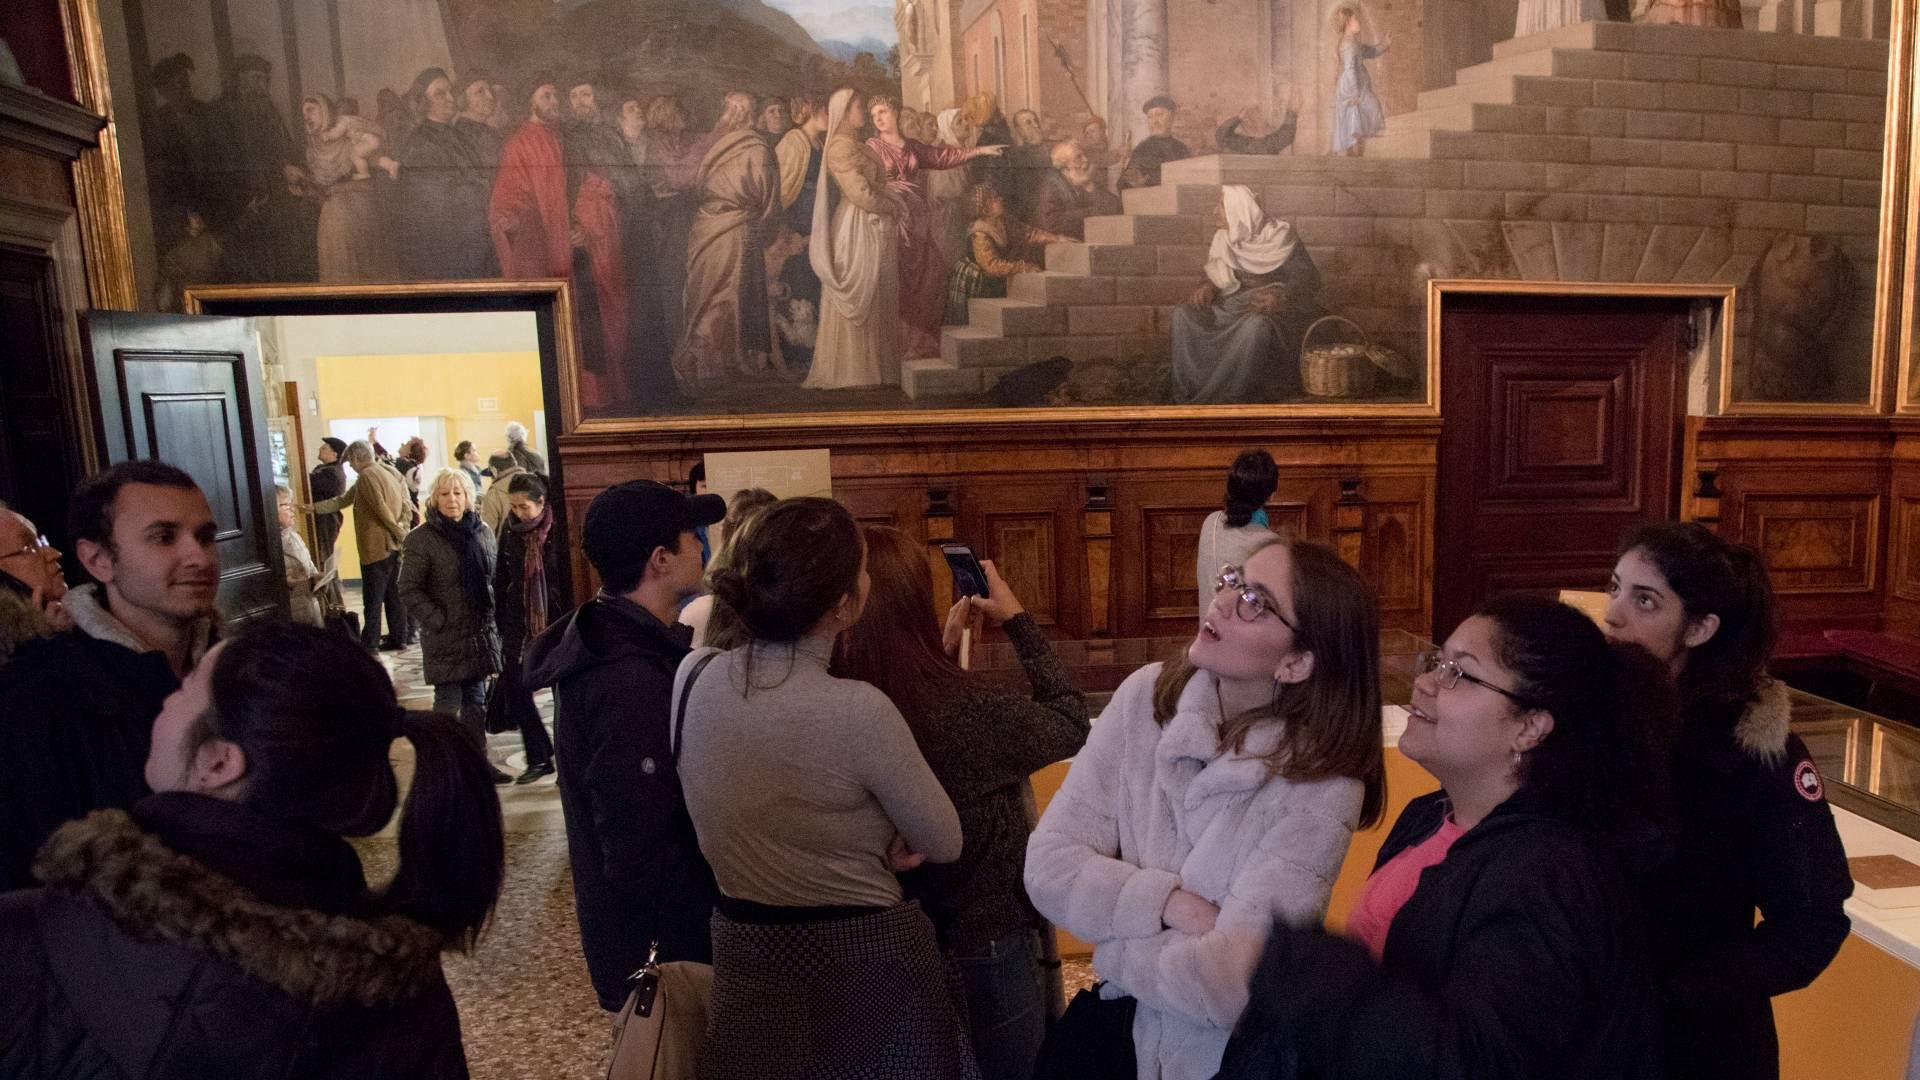 Students looking up at artwork in Gallerie dell'Accademia in Venice